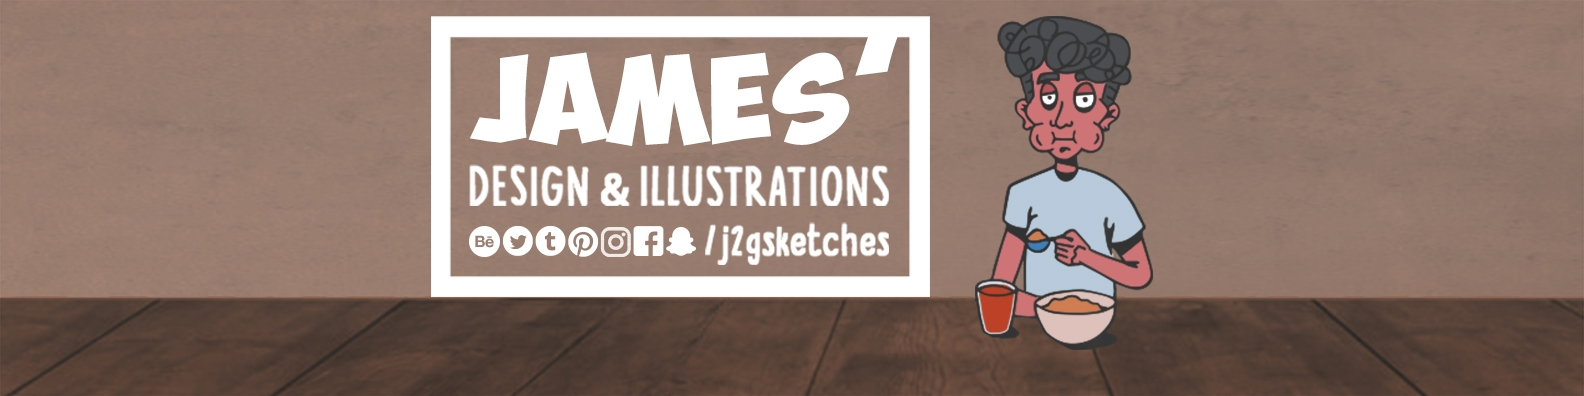 James Jacob George (@j2gsketches) Cover Image